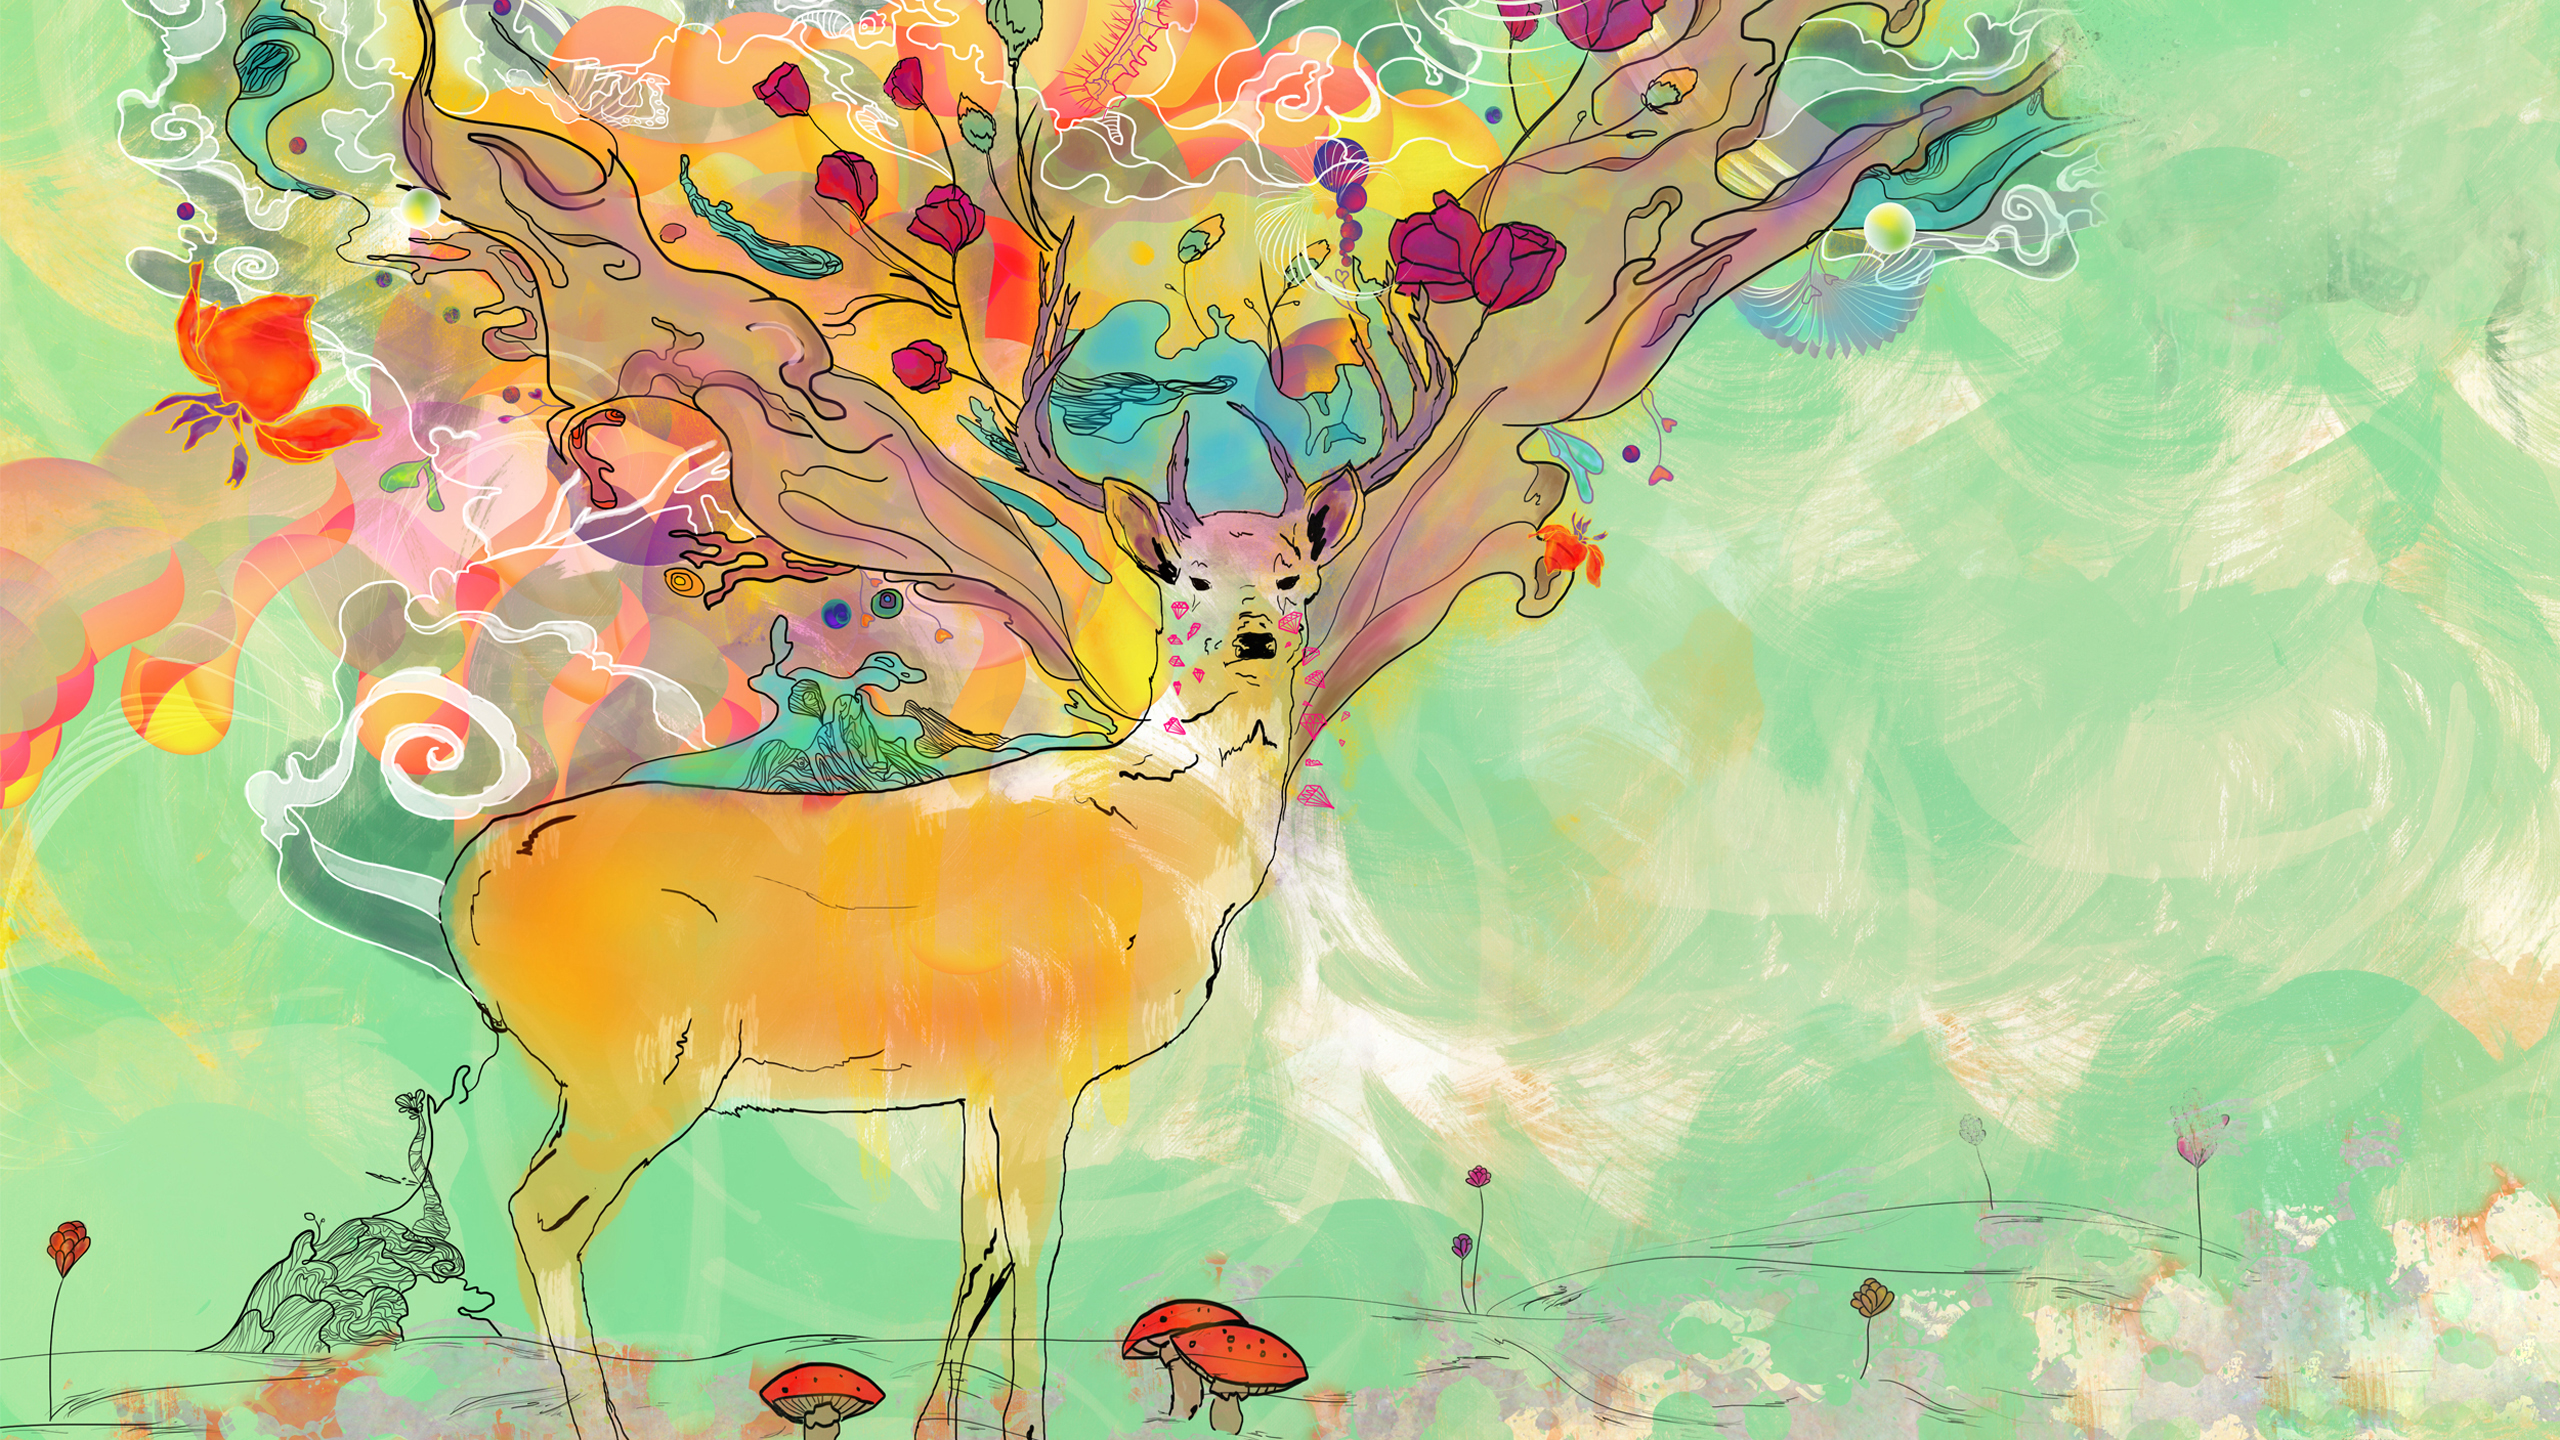 Art Psychedelic Color Surreal Paintings Animals Deer Mood